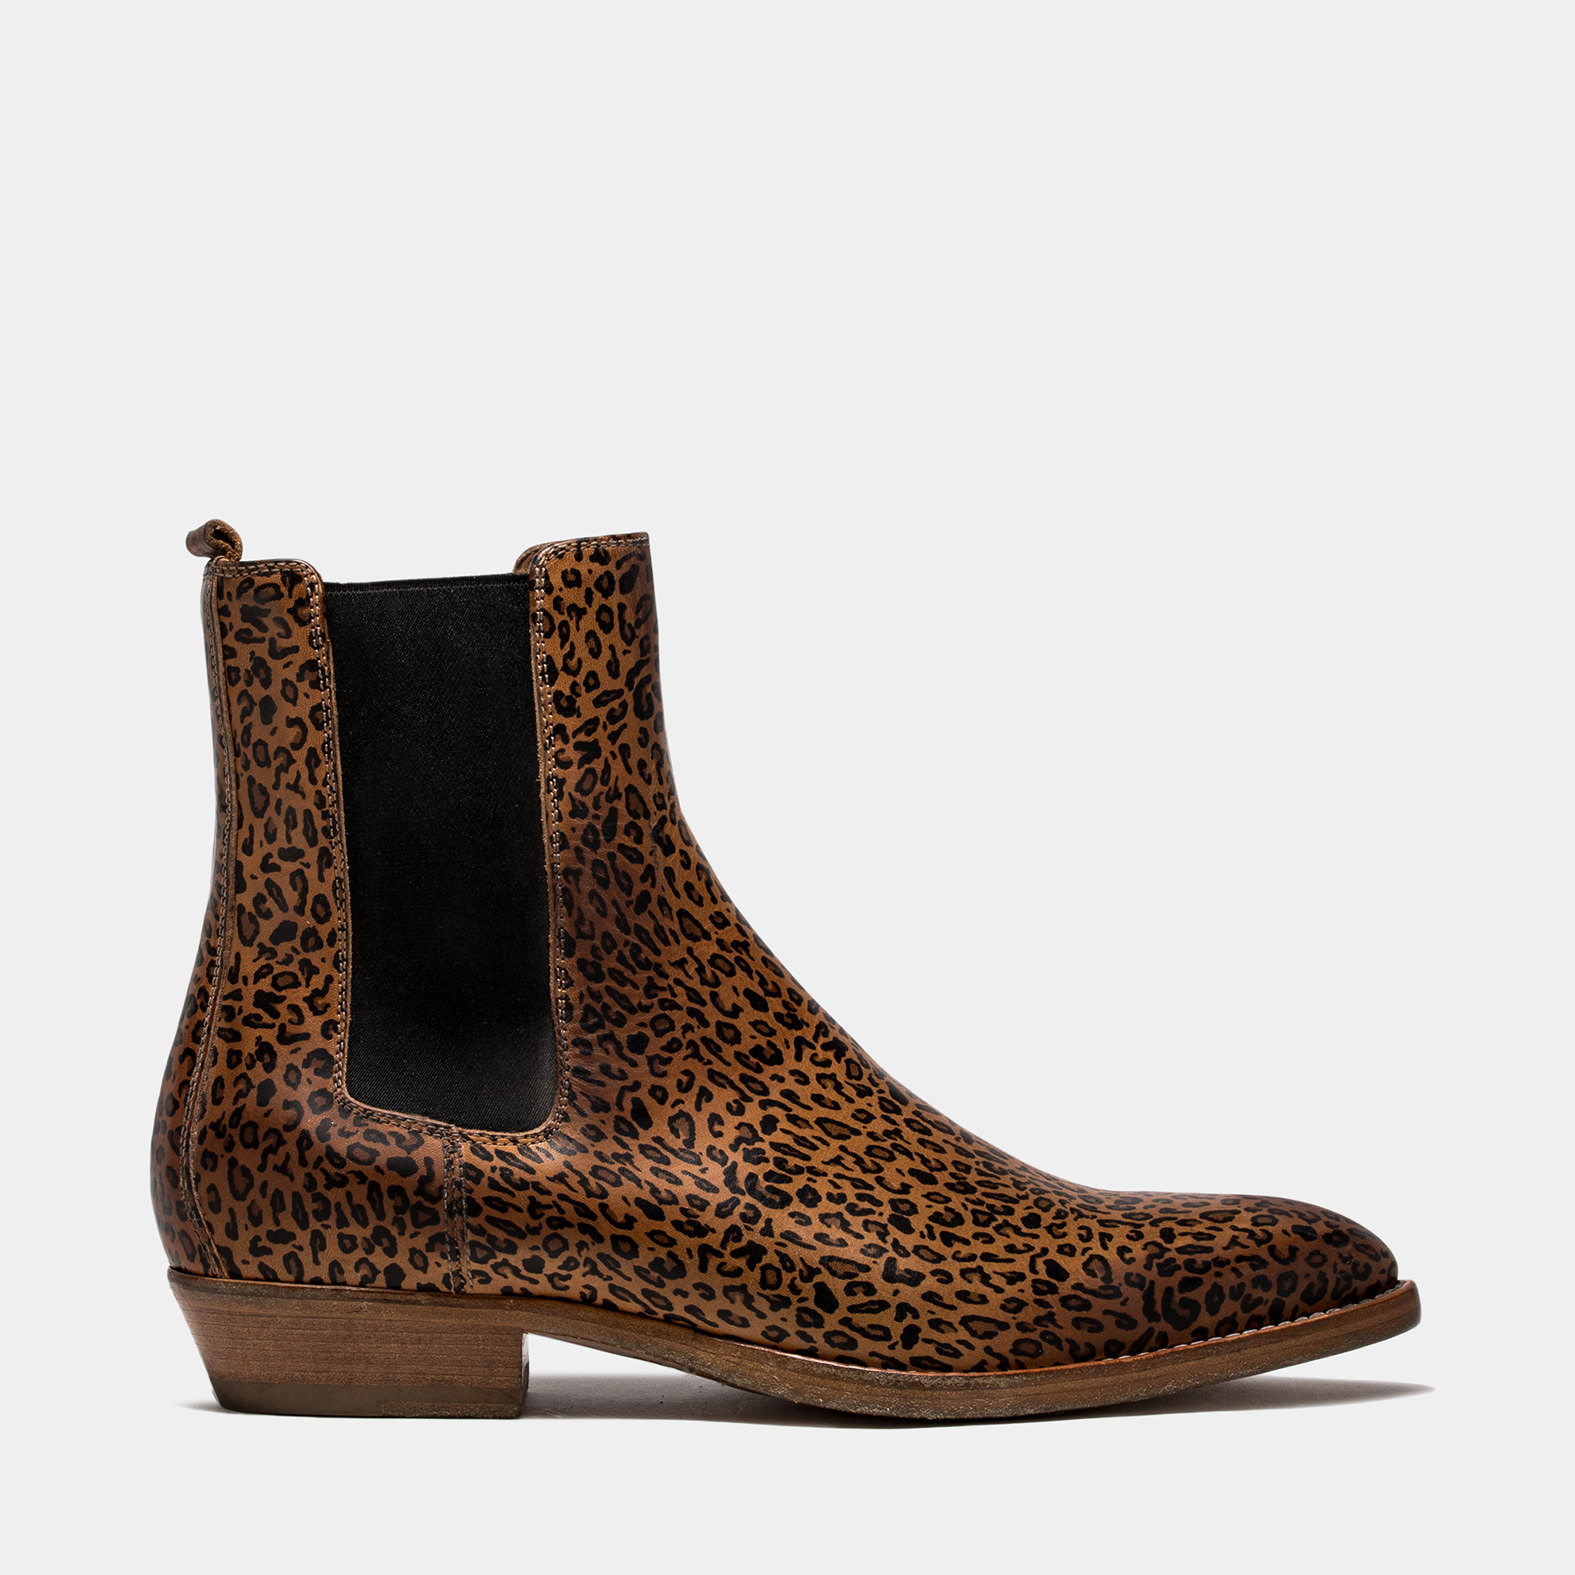 BUTTERO: NATURAL BROWN LEATHER FARGO ANKLE BOOTS WITH LEOPARD PRINT